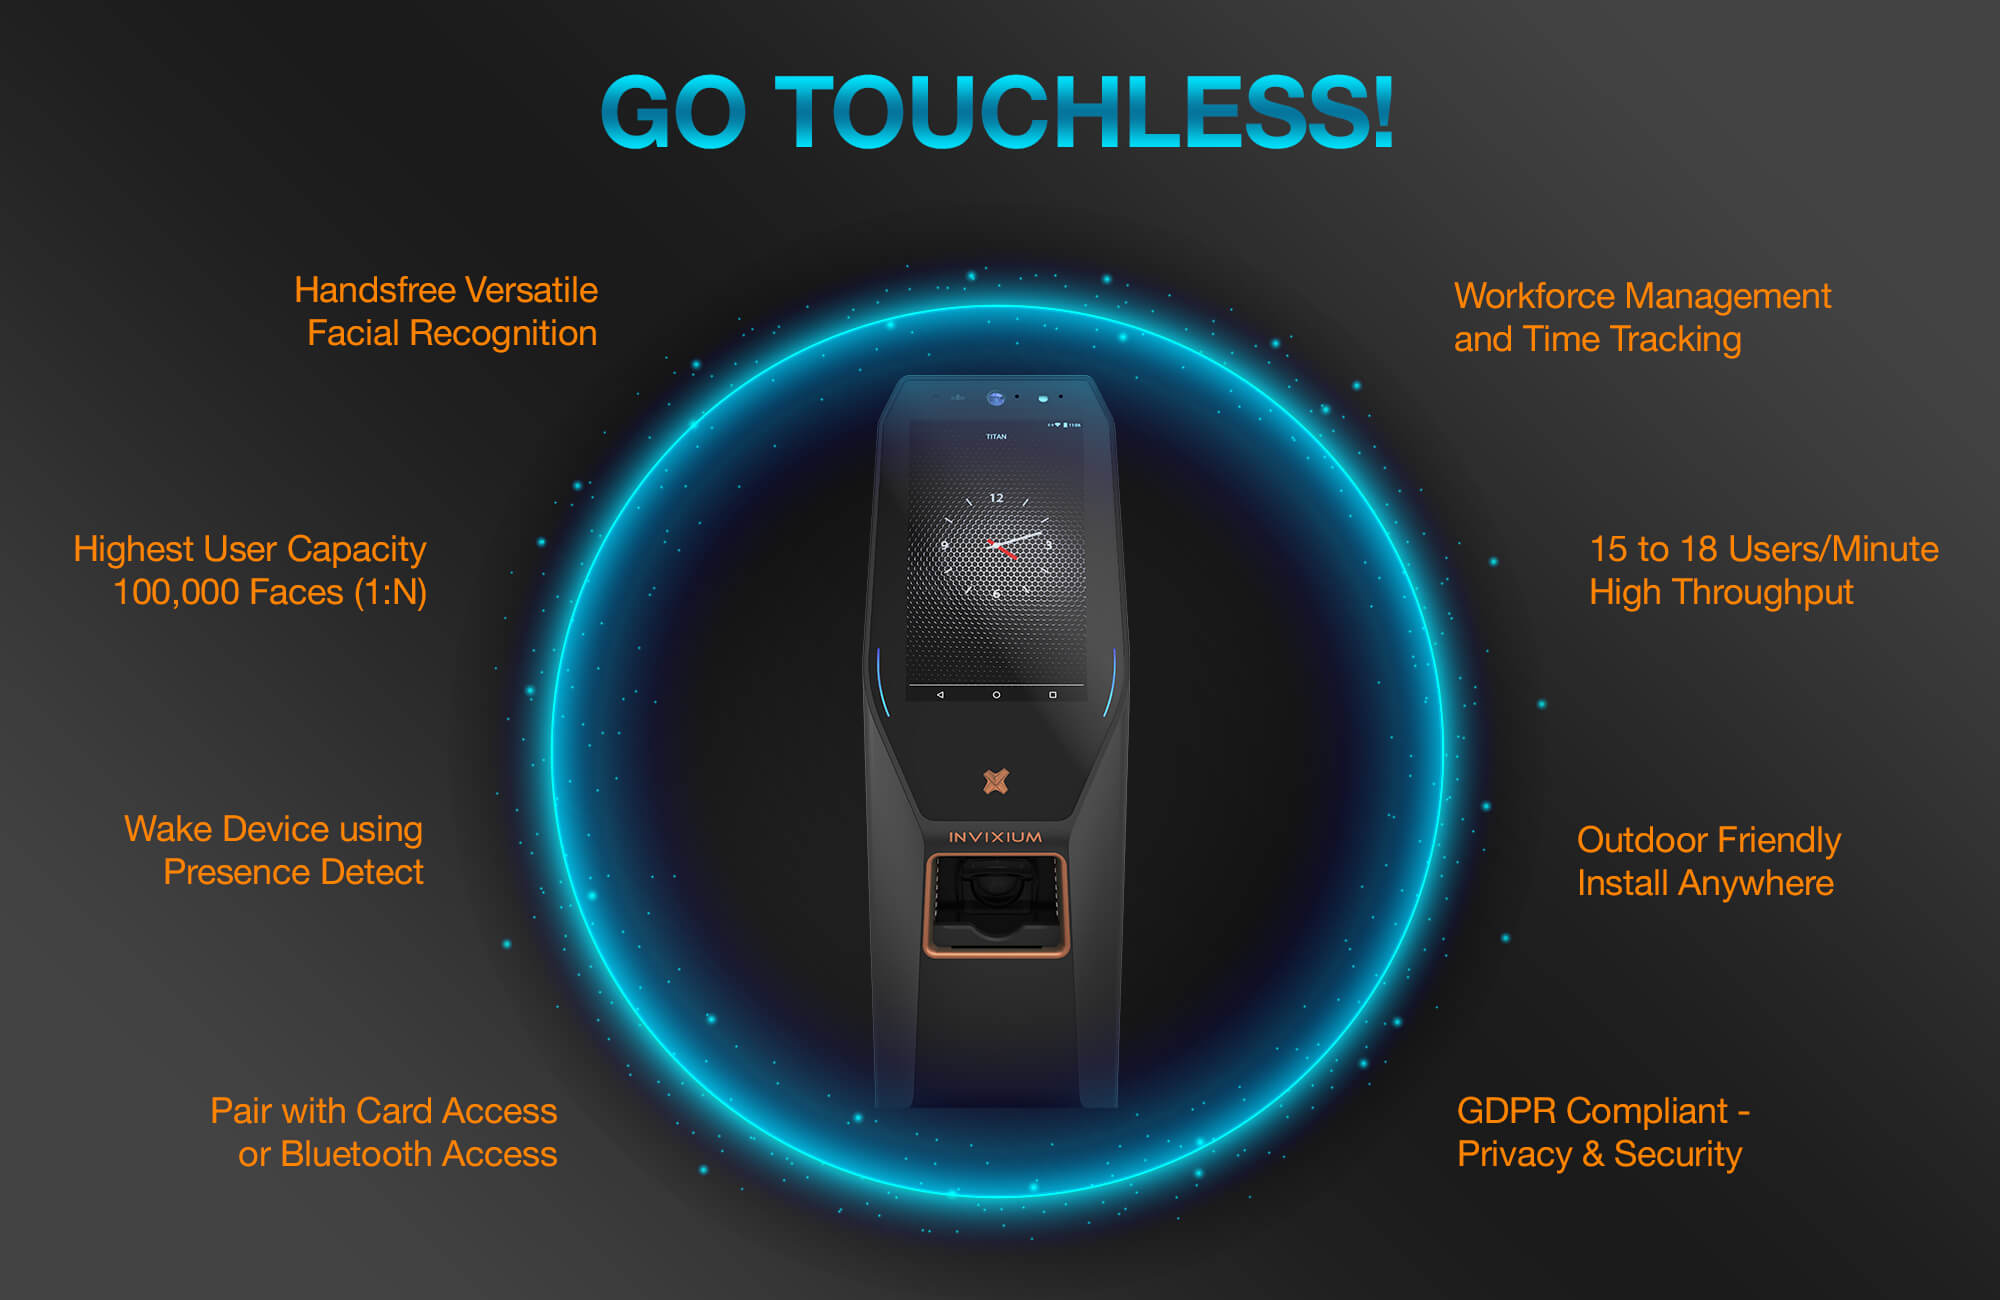 Touchless Biometric Solution in COVID-19 Pandemic